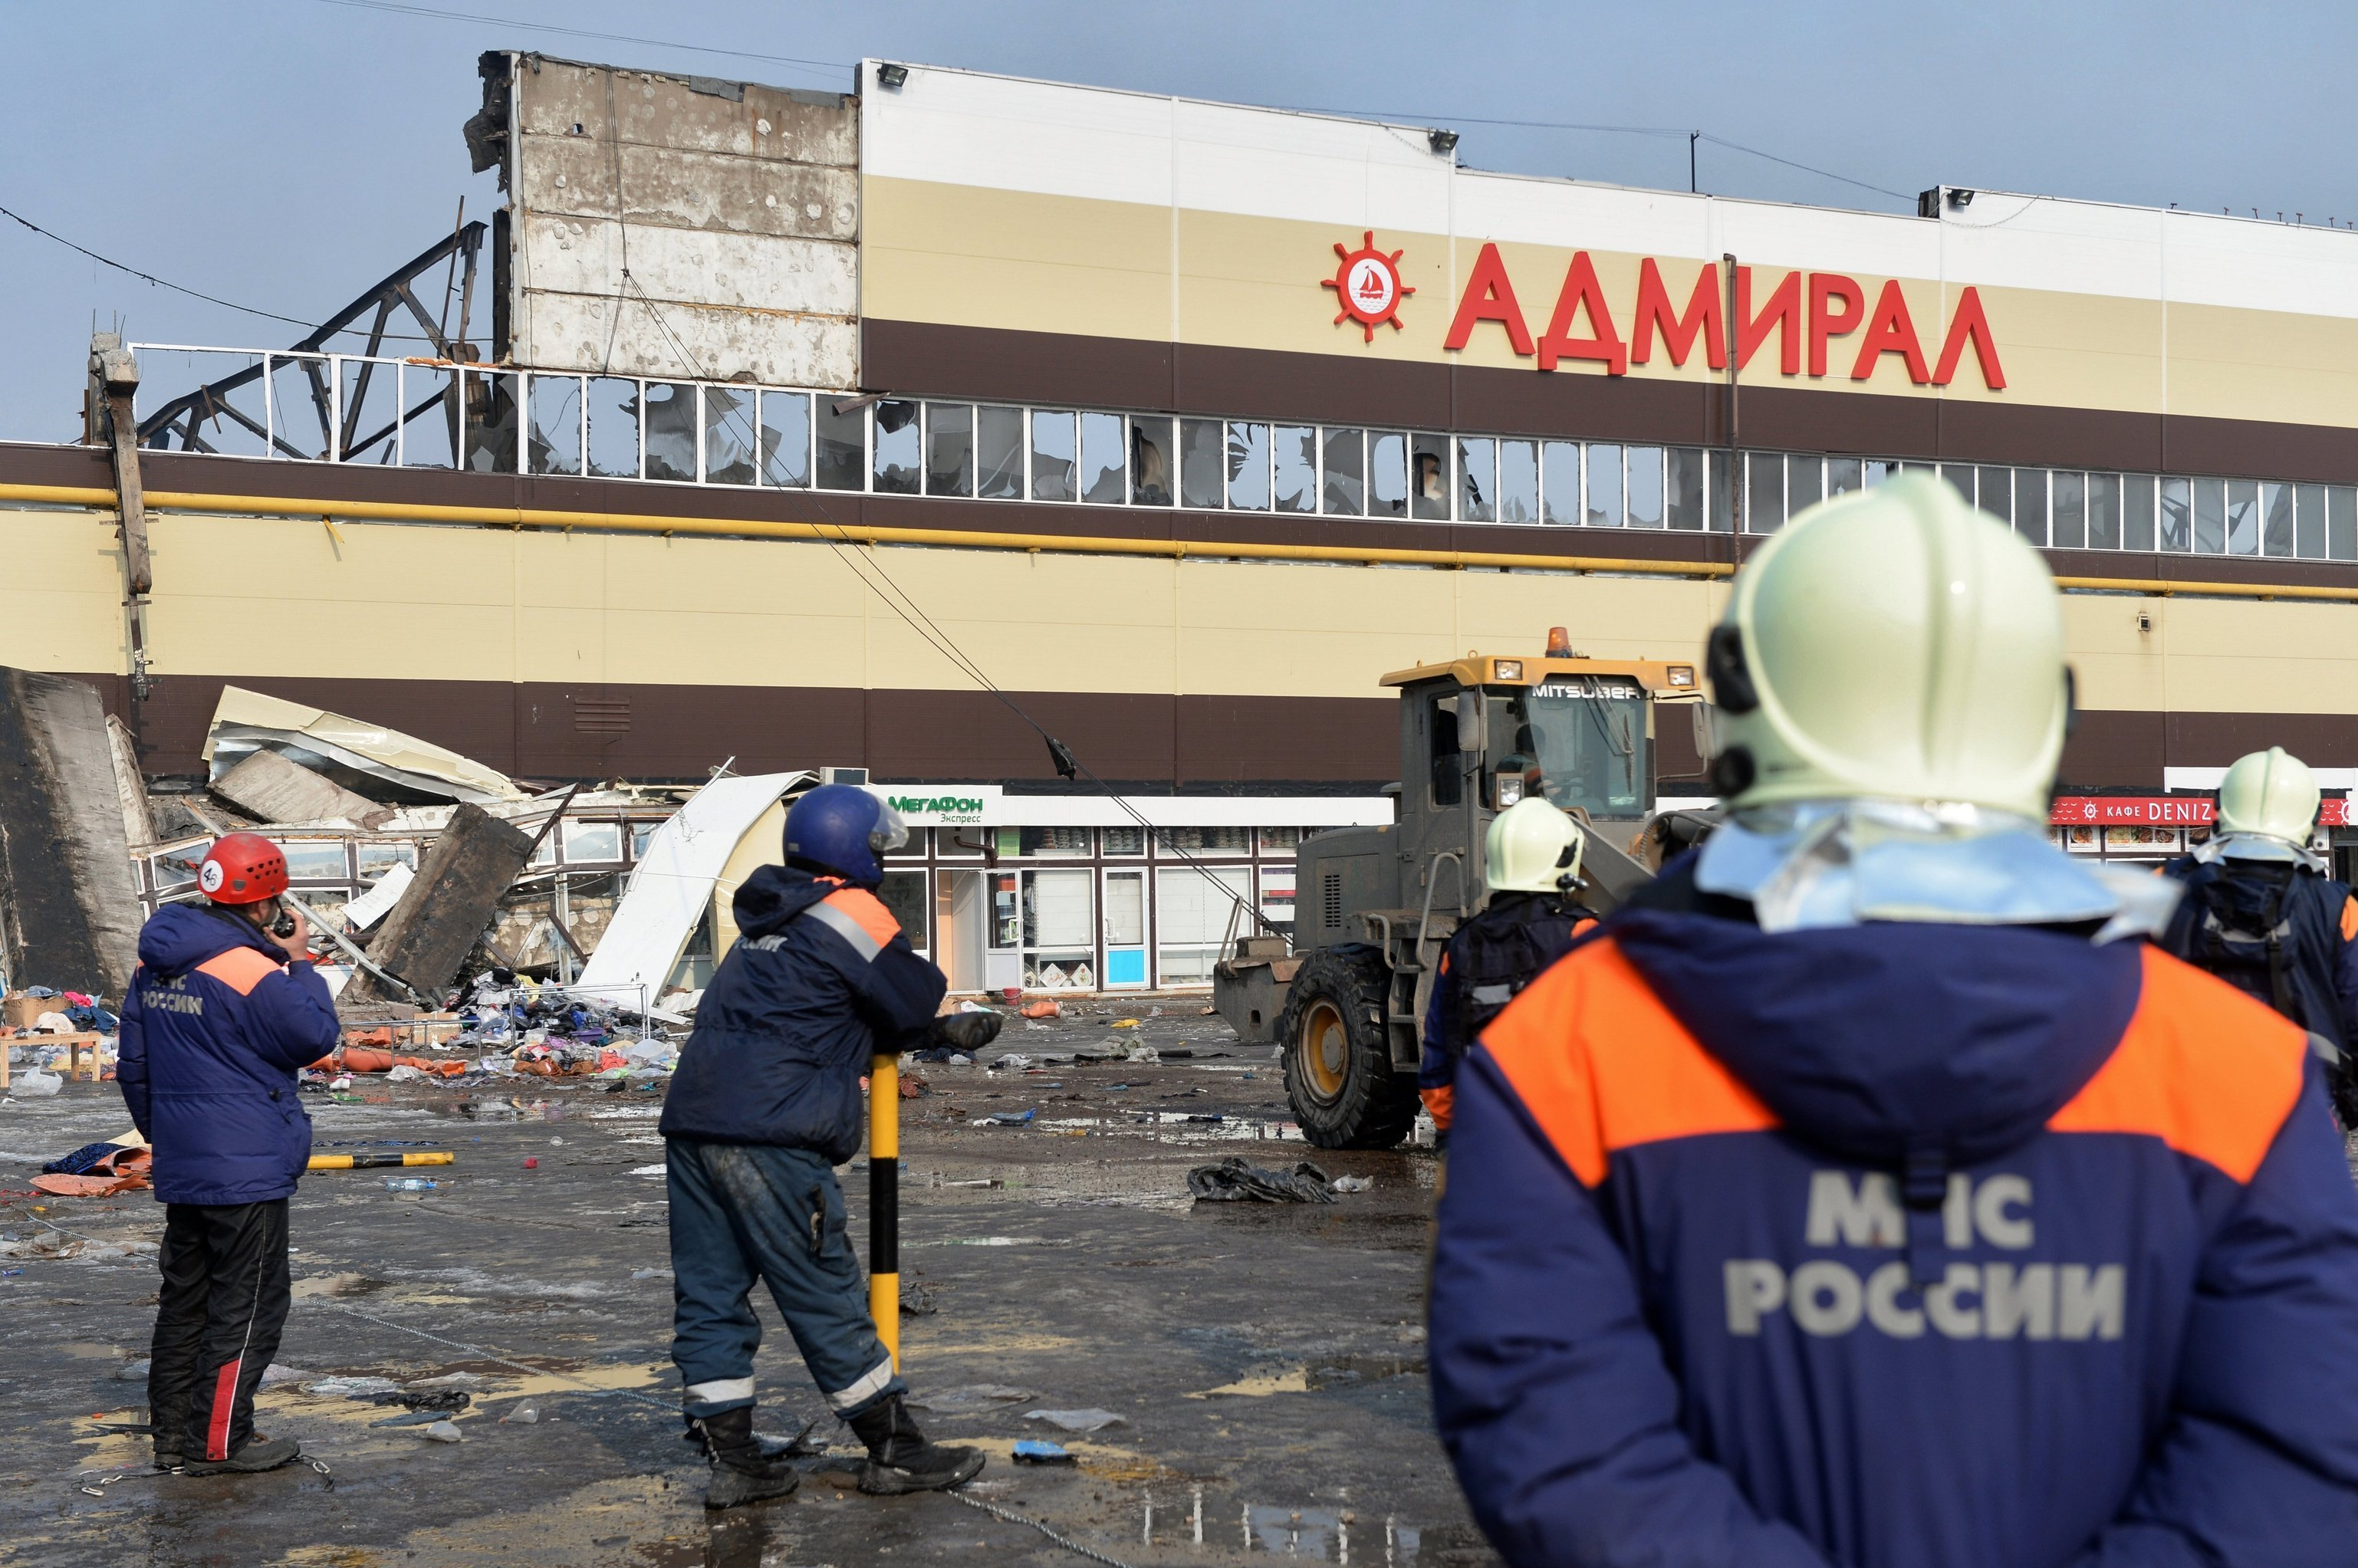 Crews clean up debris after Admiral shopping mall fire in Kazan